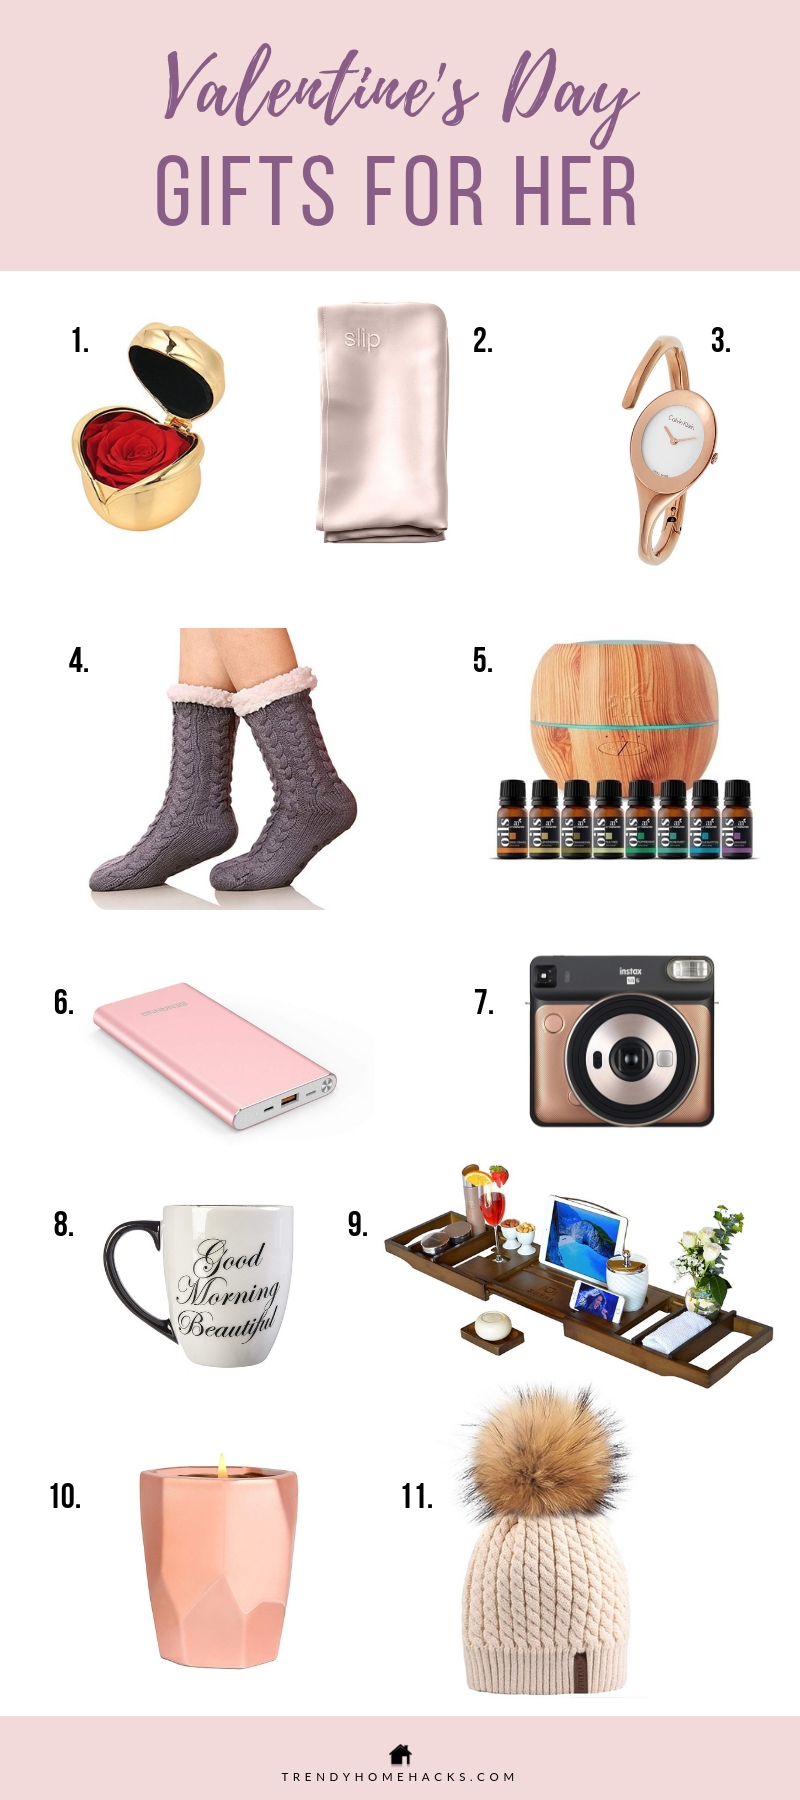 2019 Valentine S Day Gift Guide For Him And Her Trendy Home Hacks